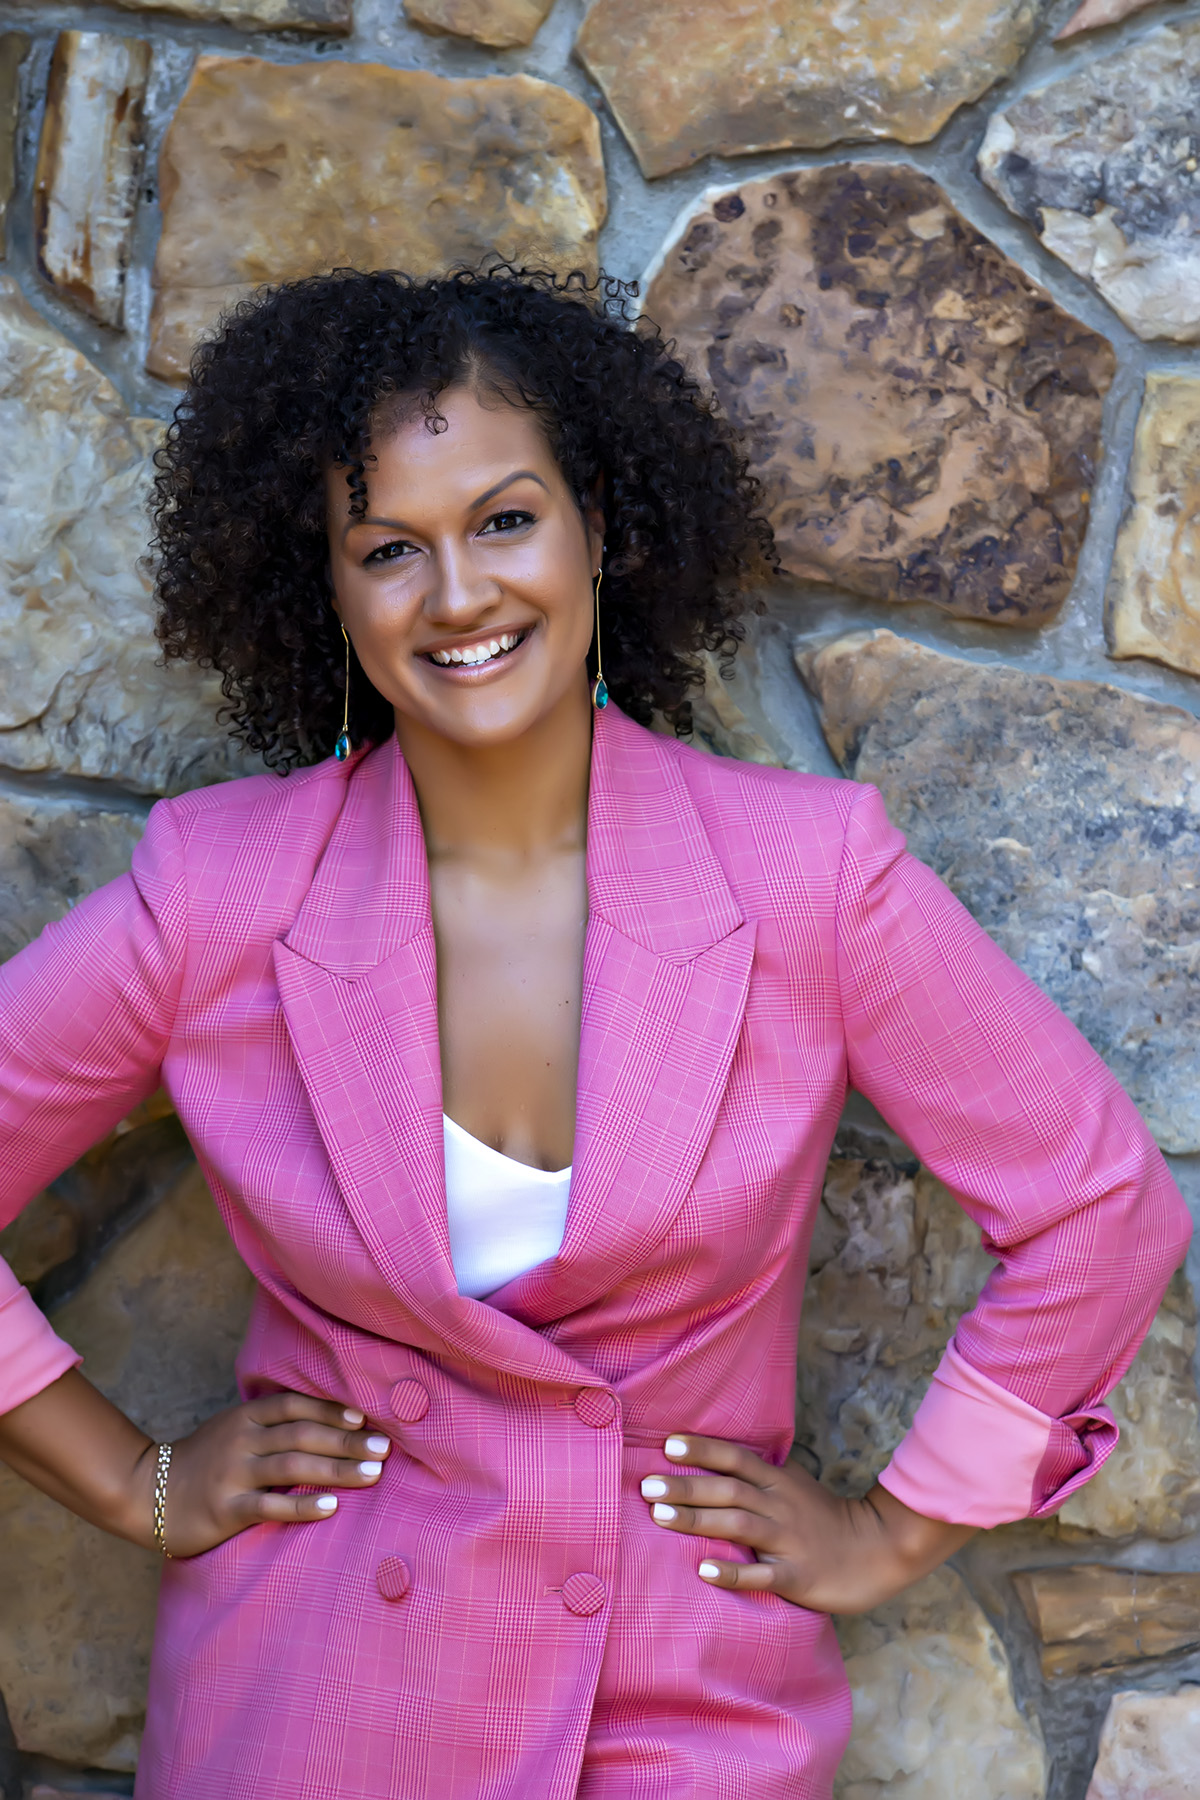 A medium-skinned woman with tight, chin-length black curls stands against a stone wall wearing a pink blazer with a low-cut neckline. She rests her hands on her hips and smiles warmly at the camera.